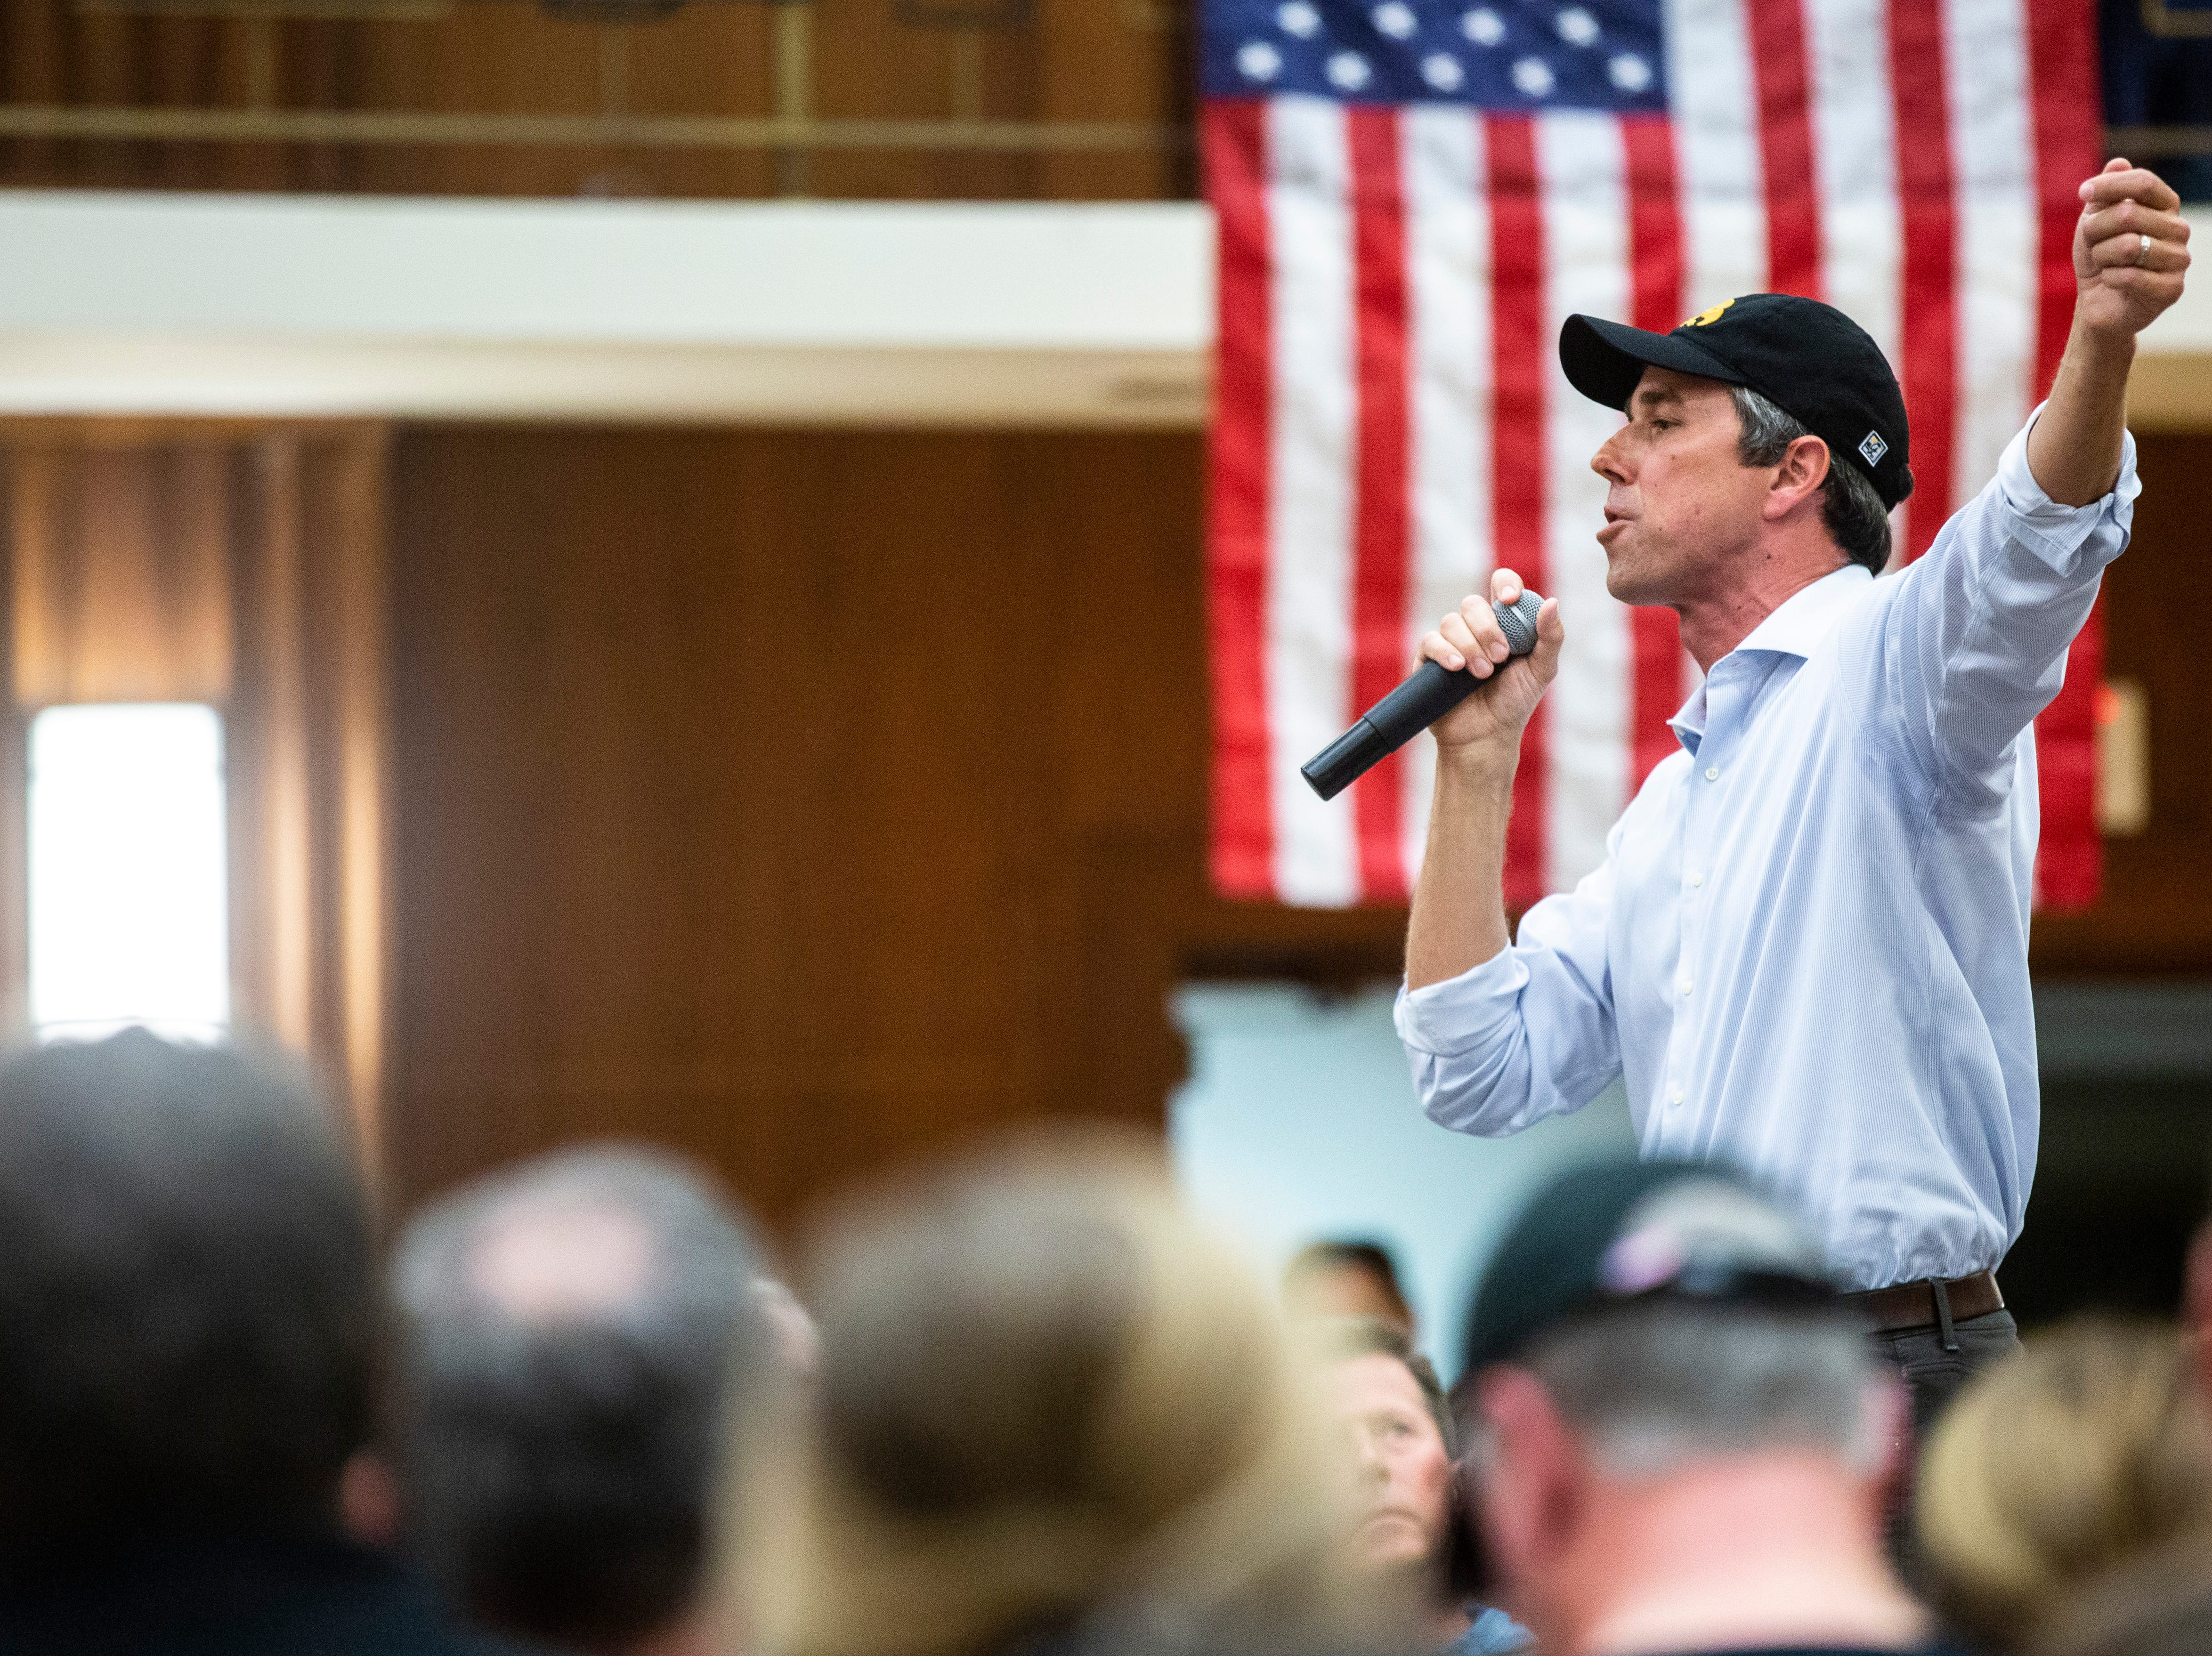 Democratic presidential candidate Beto O'Rourke of El Paso, Texas, speaks during a town hall event on Sunday, April 7, 2019, in the second floor ballroom at the Iowa Memorial Union on the University of Iowa campus in Iowa City, Iowa.